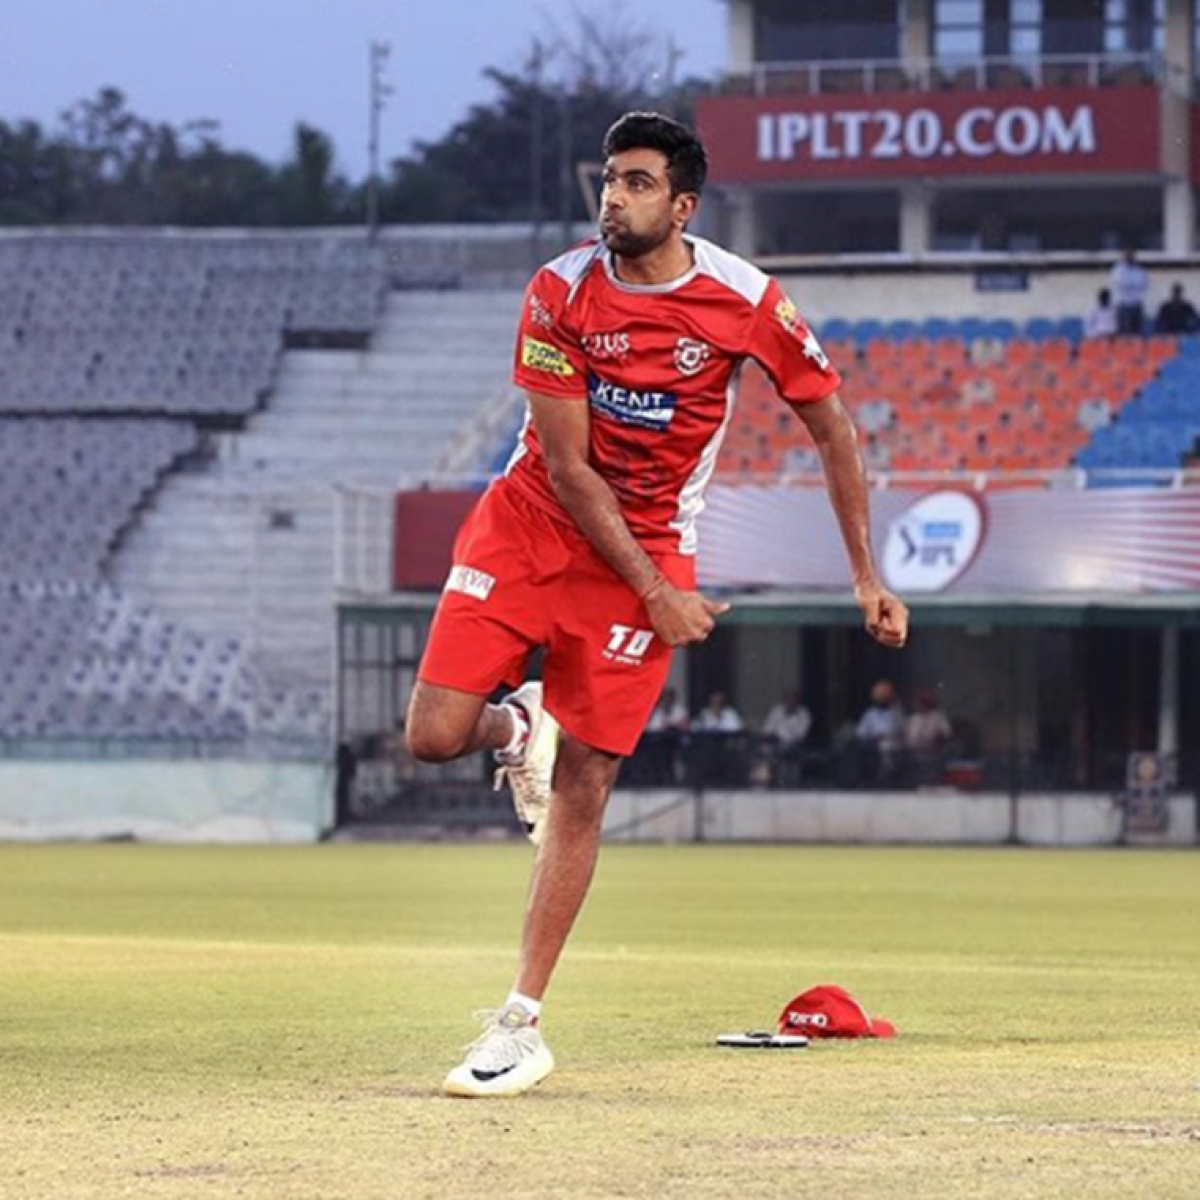 IPL 2020: Ashwin to capitalise with Delhi  in the coming season